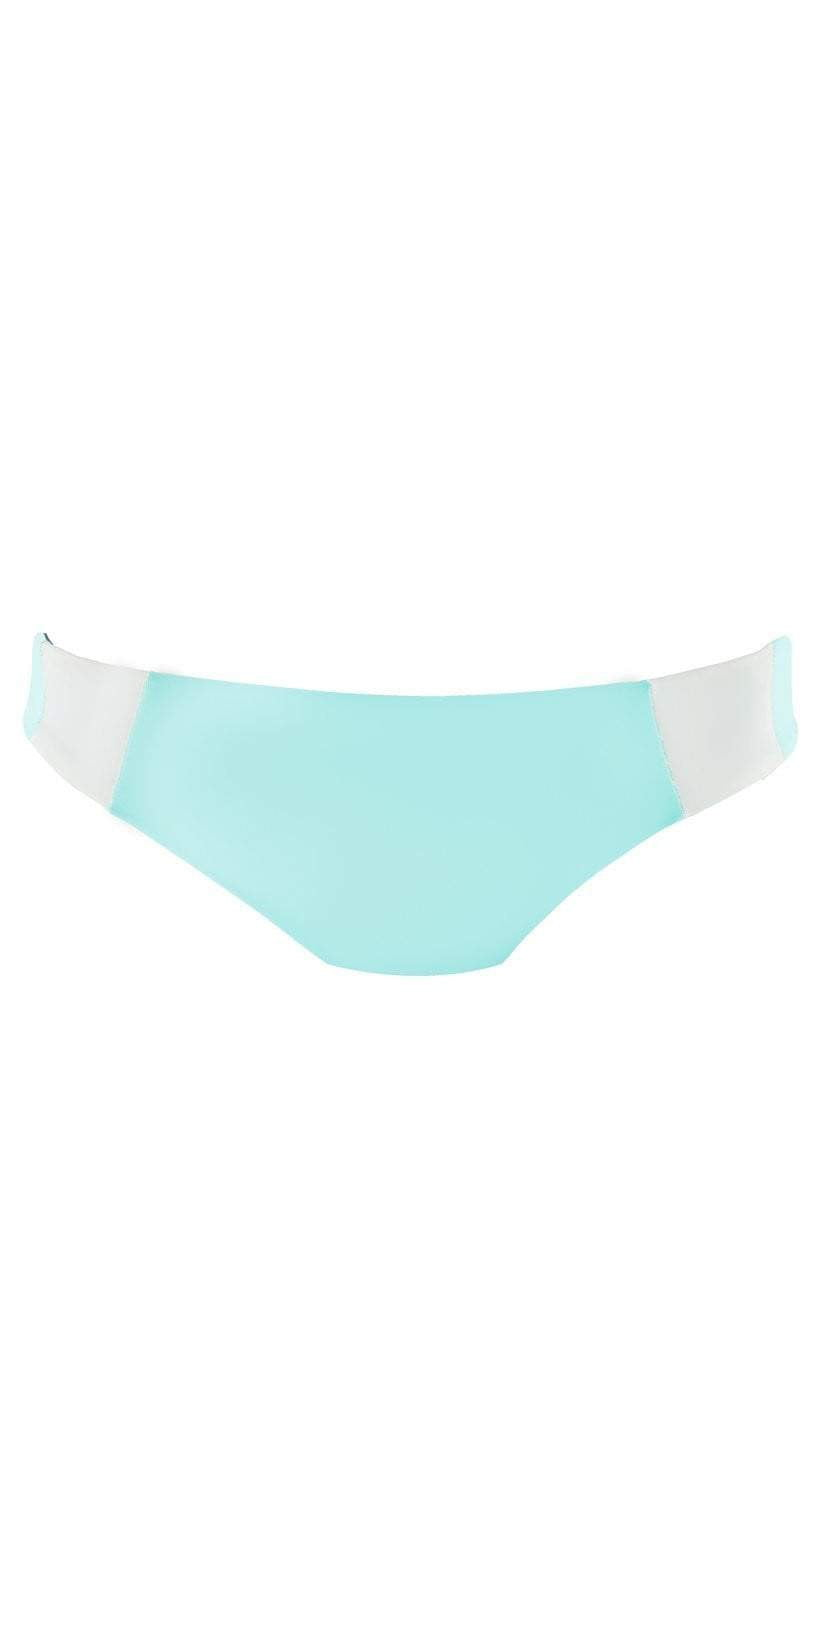 L Space Mia Color Block Reversible Light Turquoise Bottom CBMAC16-LIT  Flat Lay